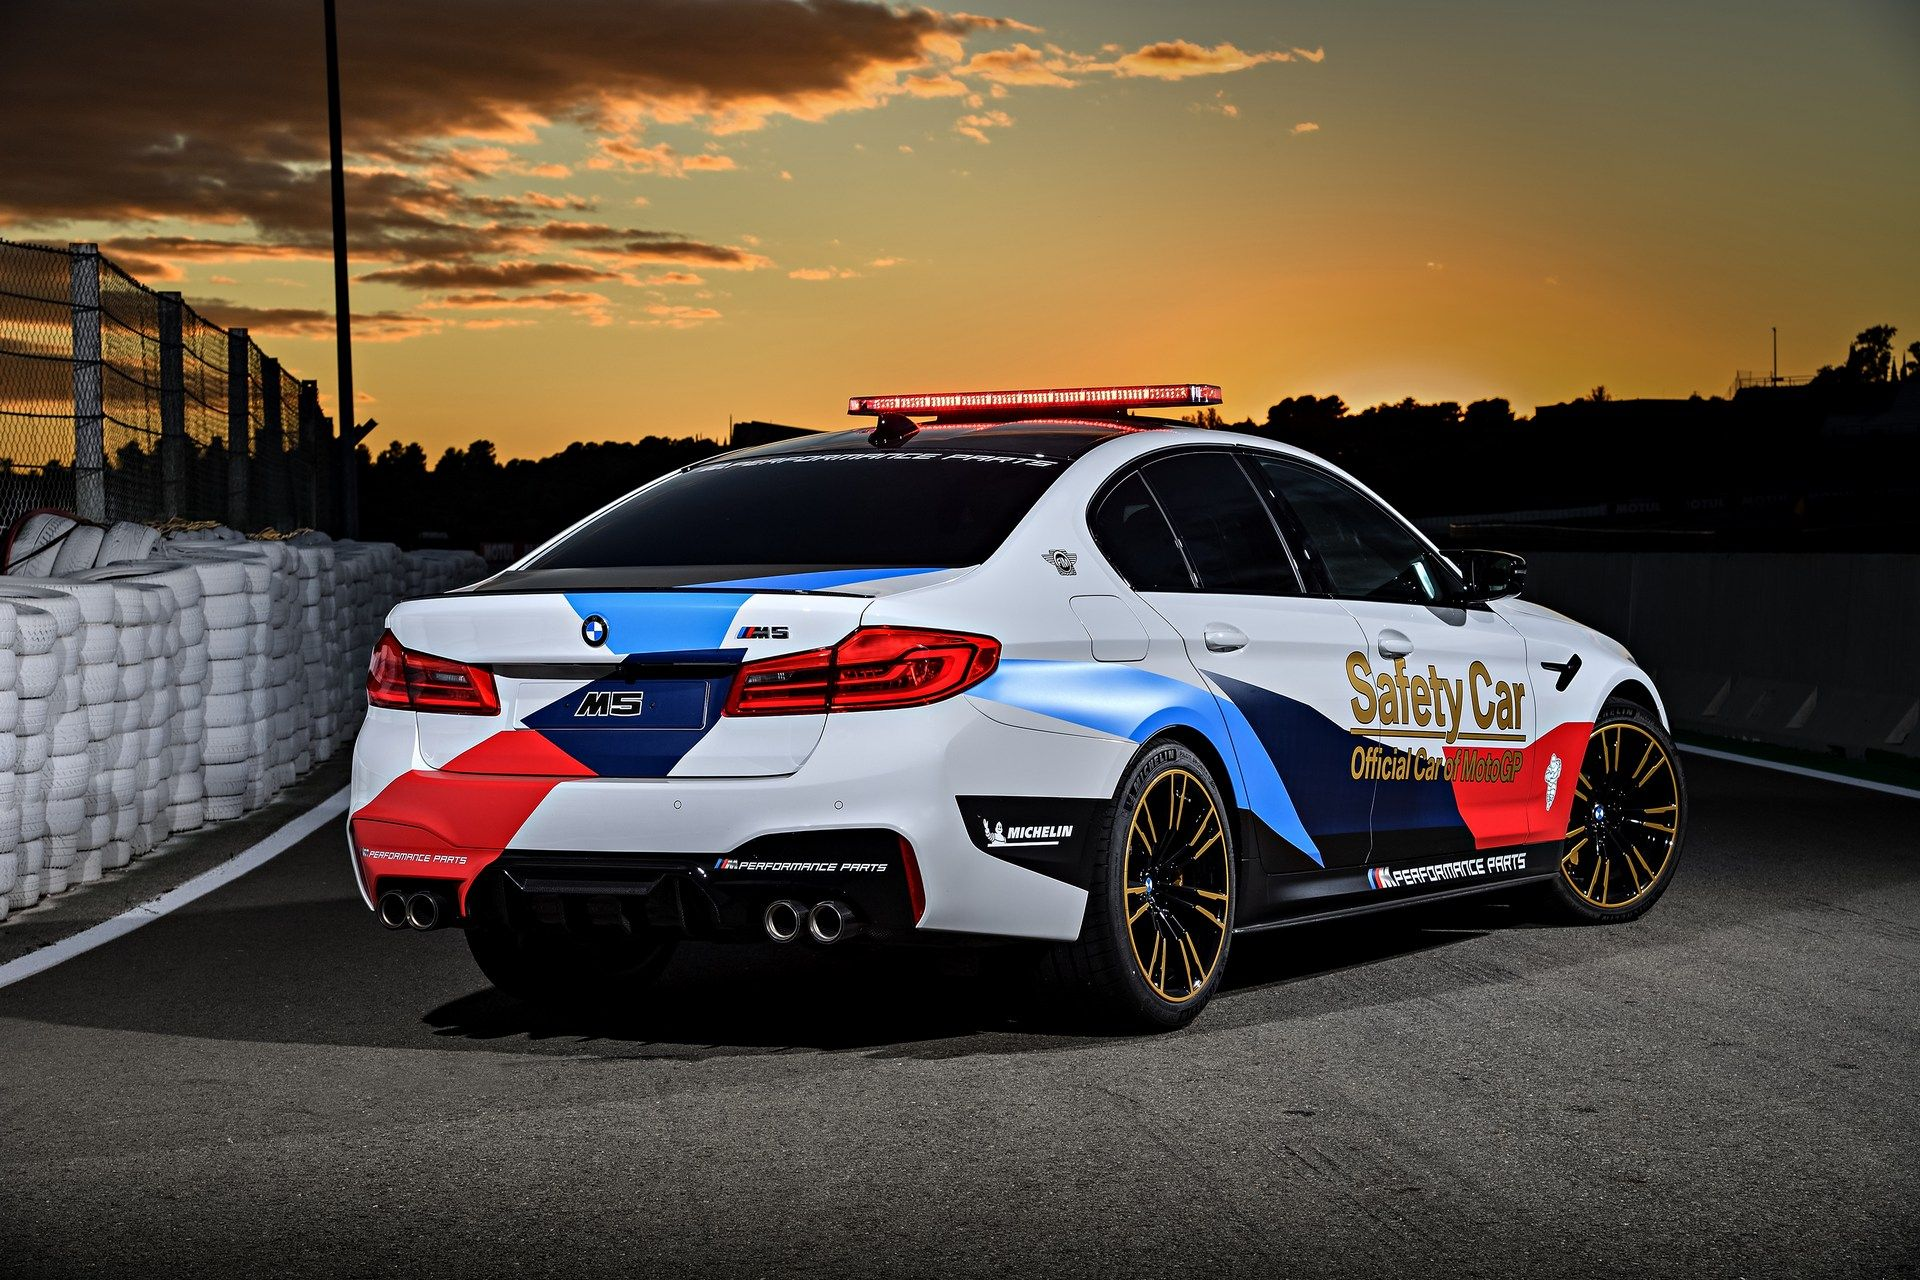 Bmw M5 Competition Confirmed For 2018 Latest Safety Car Hints At Production Model Carscoops Bmw Bmw M5 Competition M5 Competition